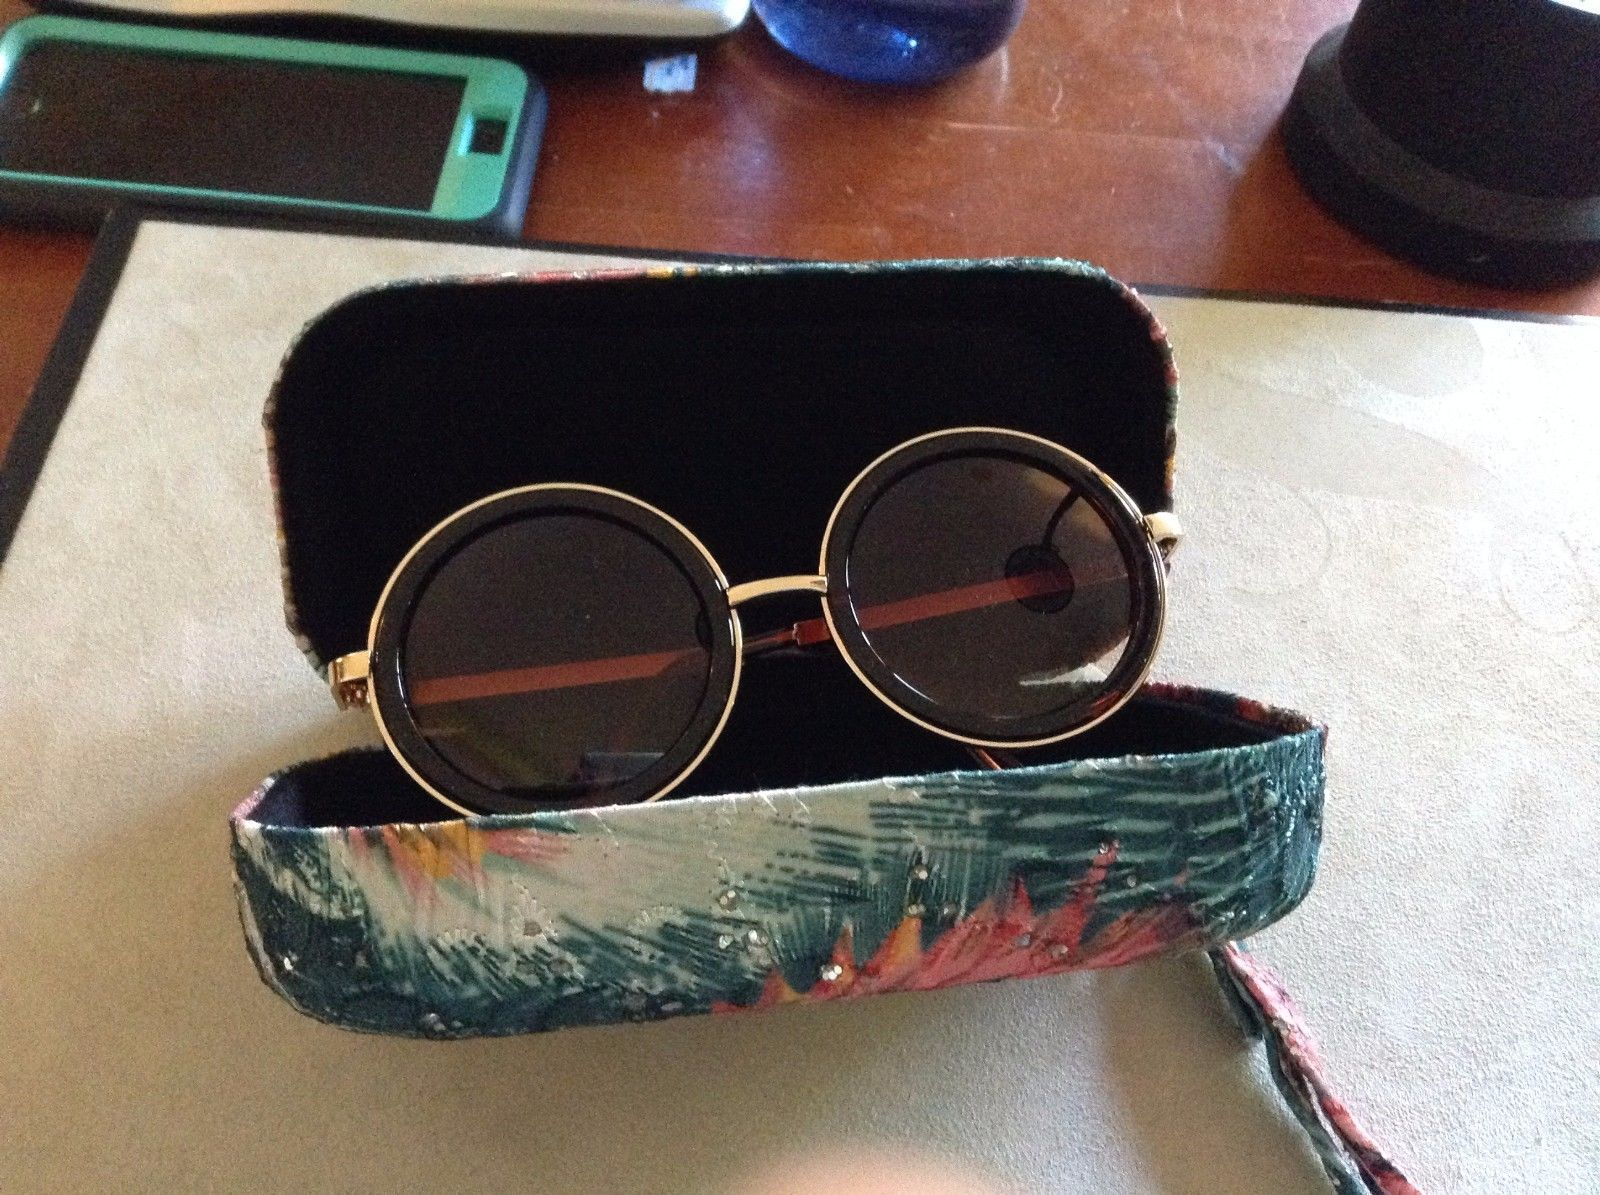 New Mad Green Painted Peacock Glasses Case With Retro 70's Circular Sunglasses